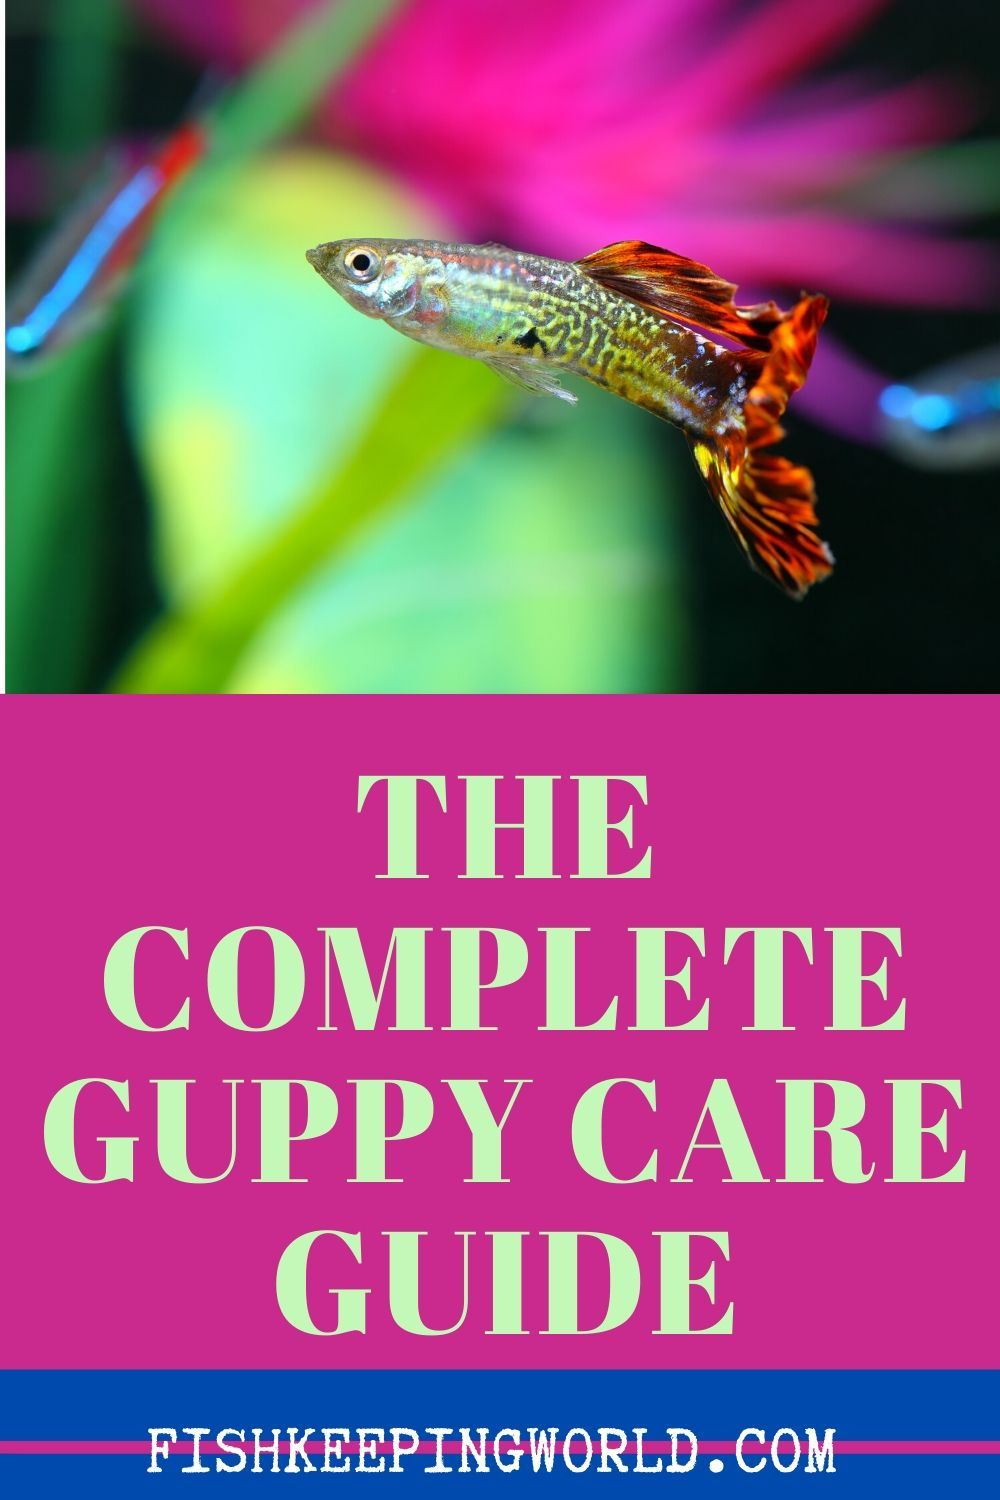 The Complete Guppy Care Guide 2020 Breeding Tank Requirements Fancy Varieties In 2020 Guppy Tropical Freshwater Fish Guppy Fish